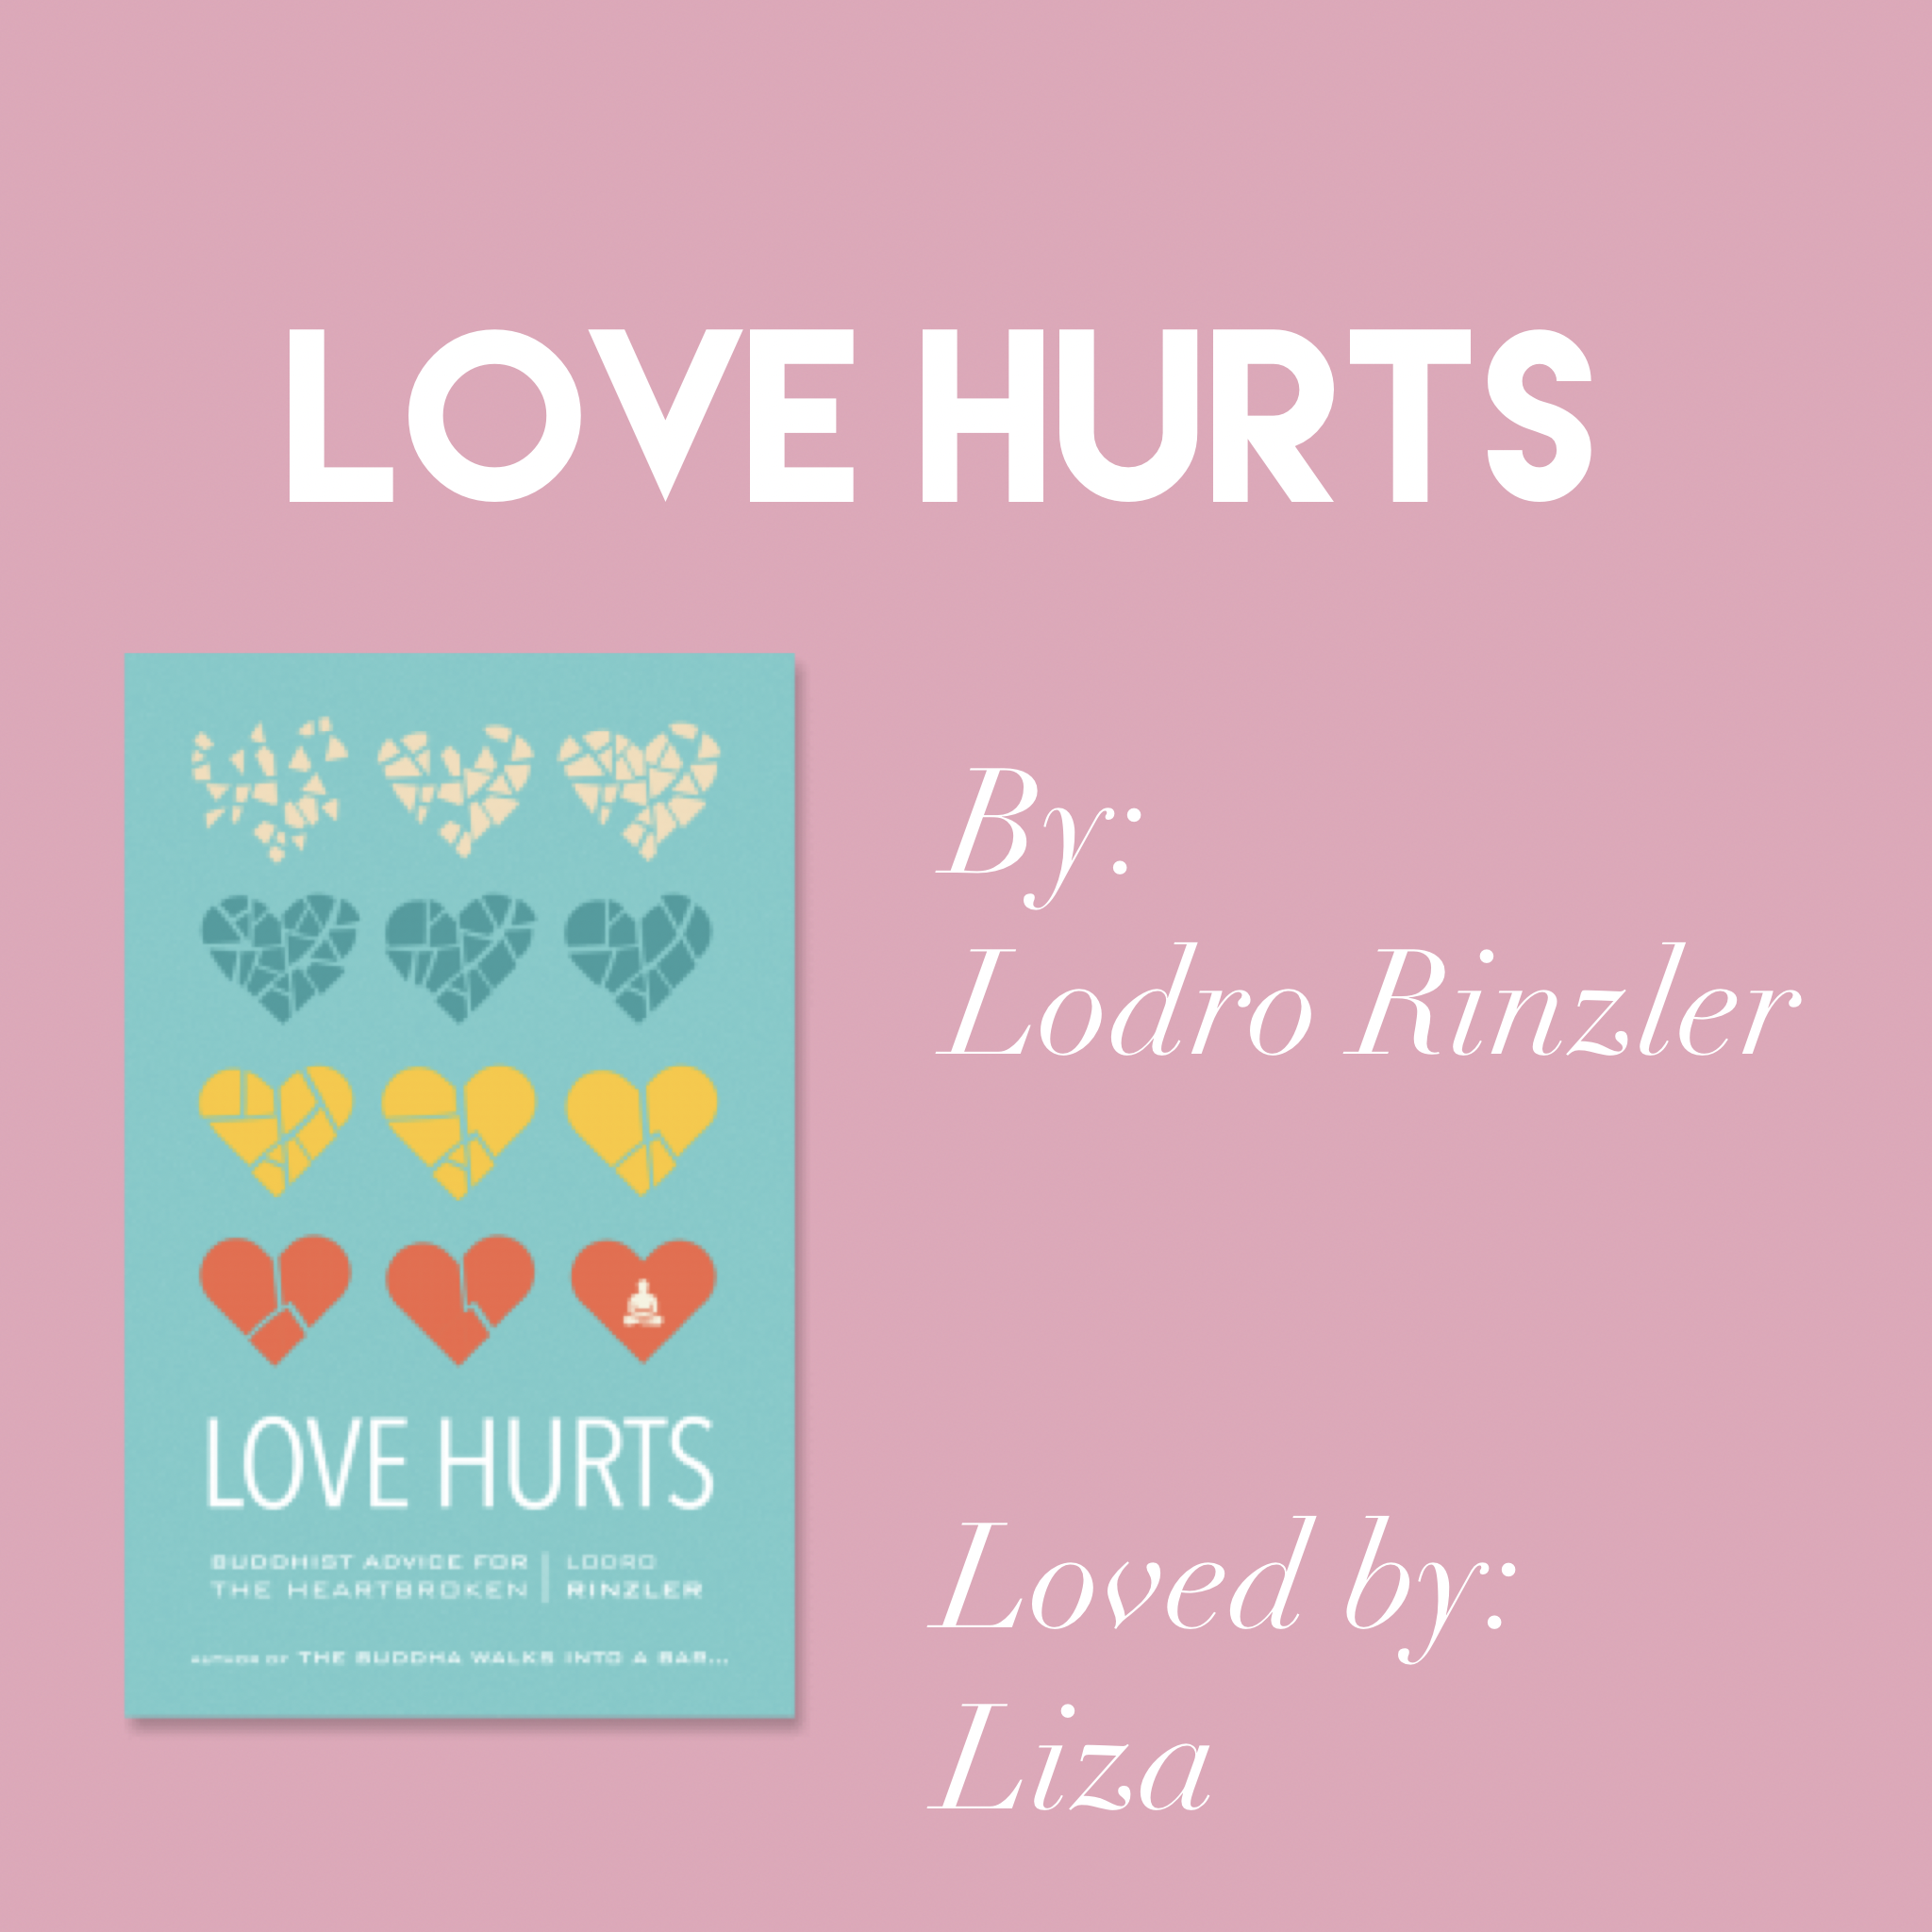 'Love Hurts' by Lodro Rinzler // Loved by Liza